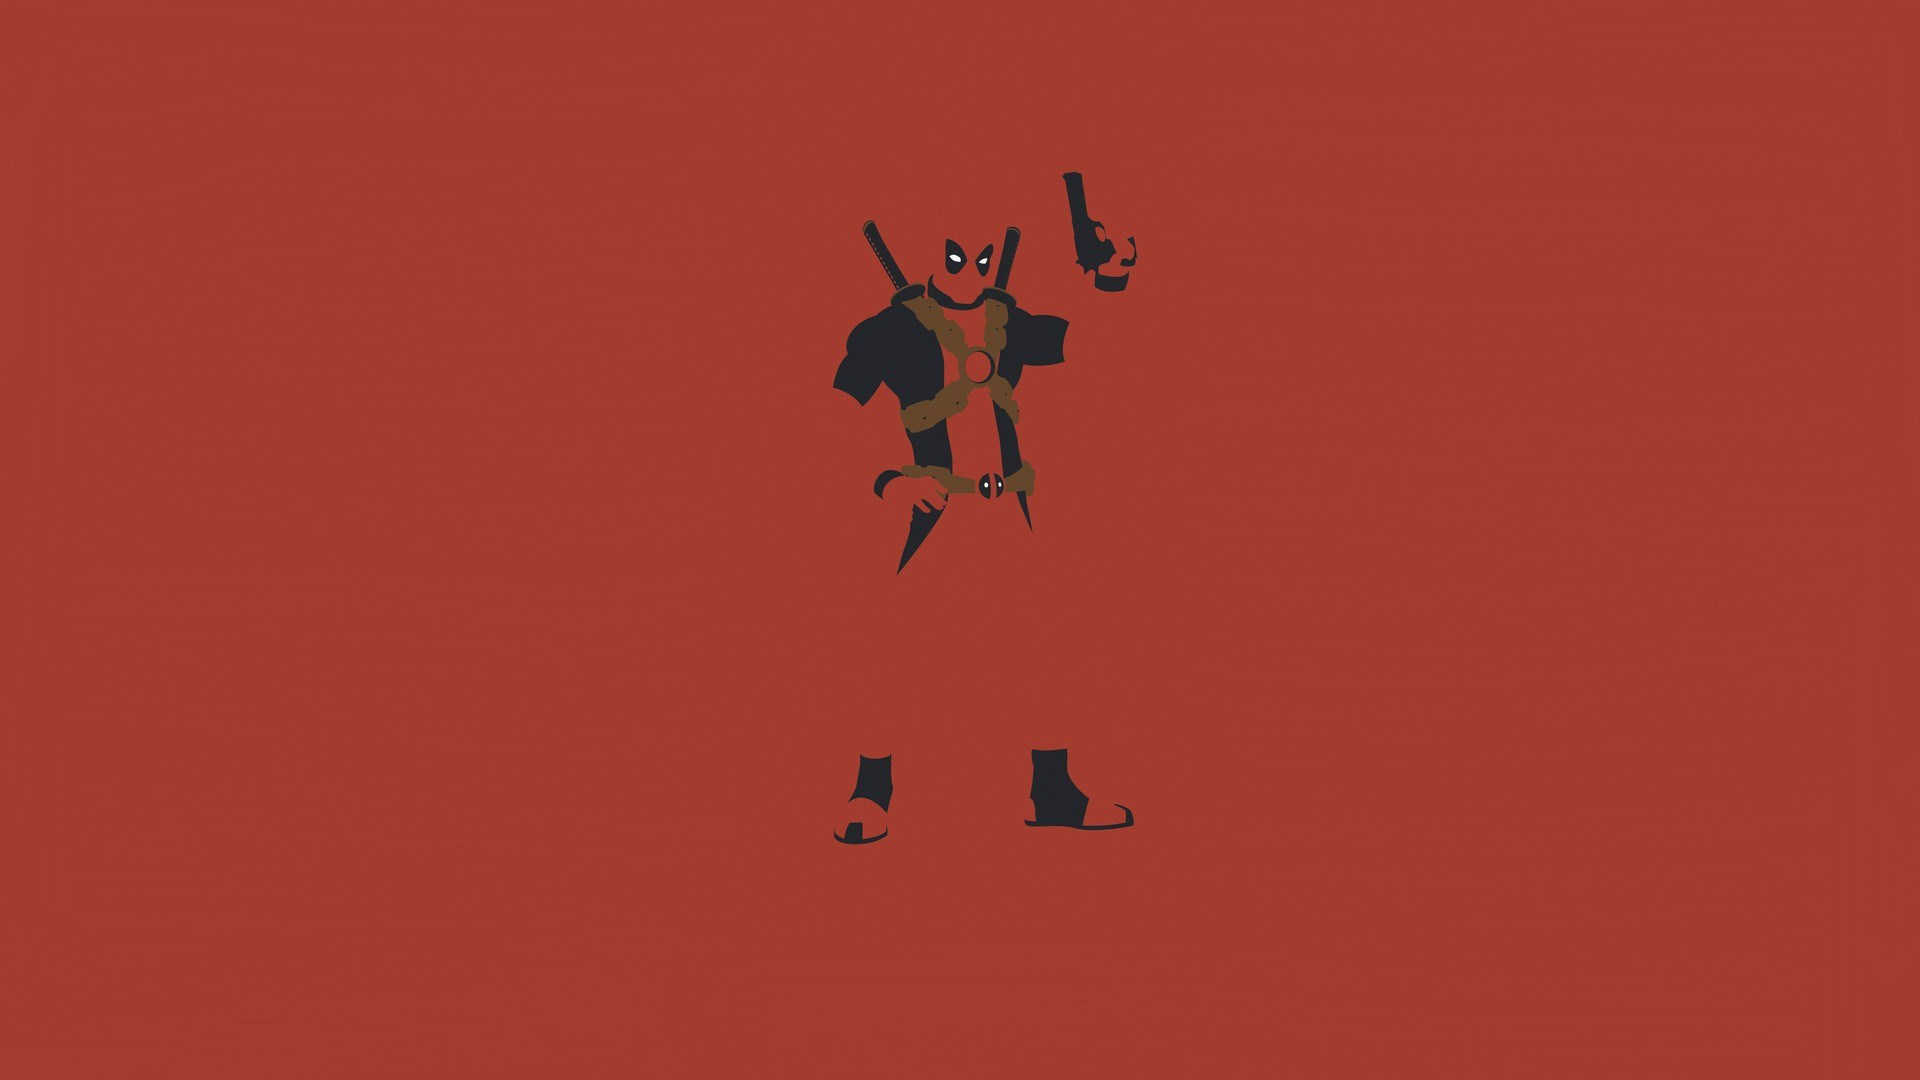 1920x1080-images-deadpool-wallpaper-wpc900329